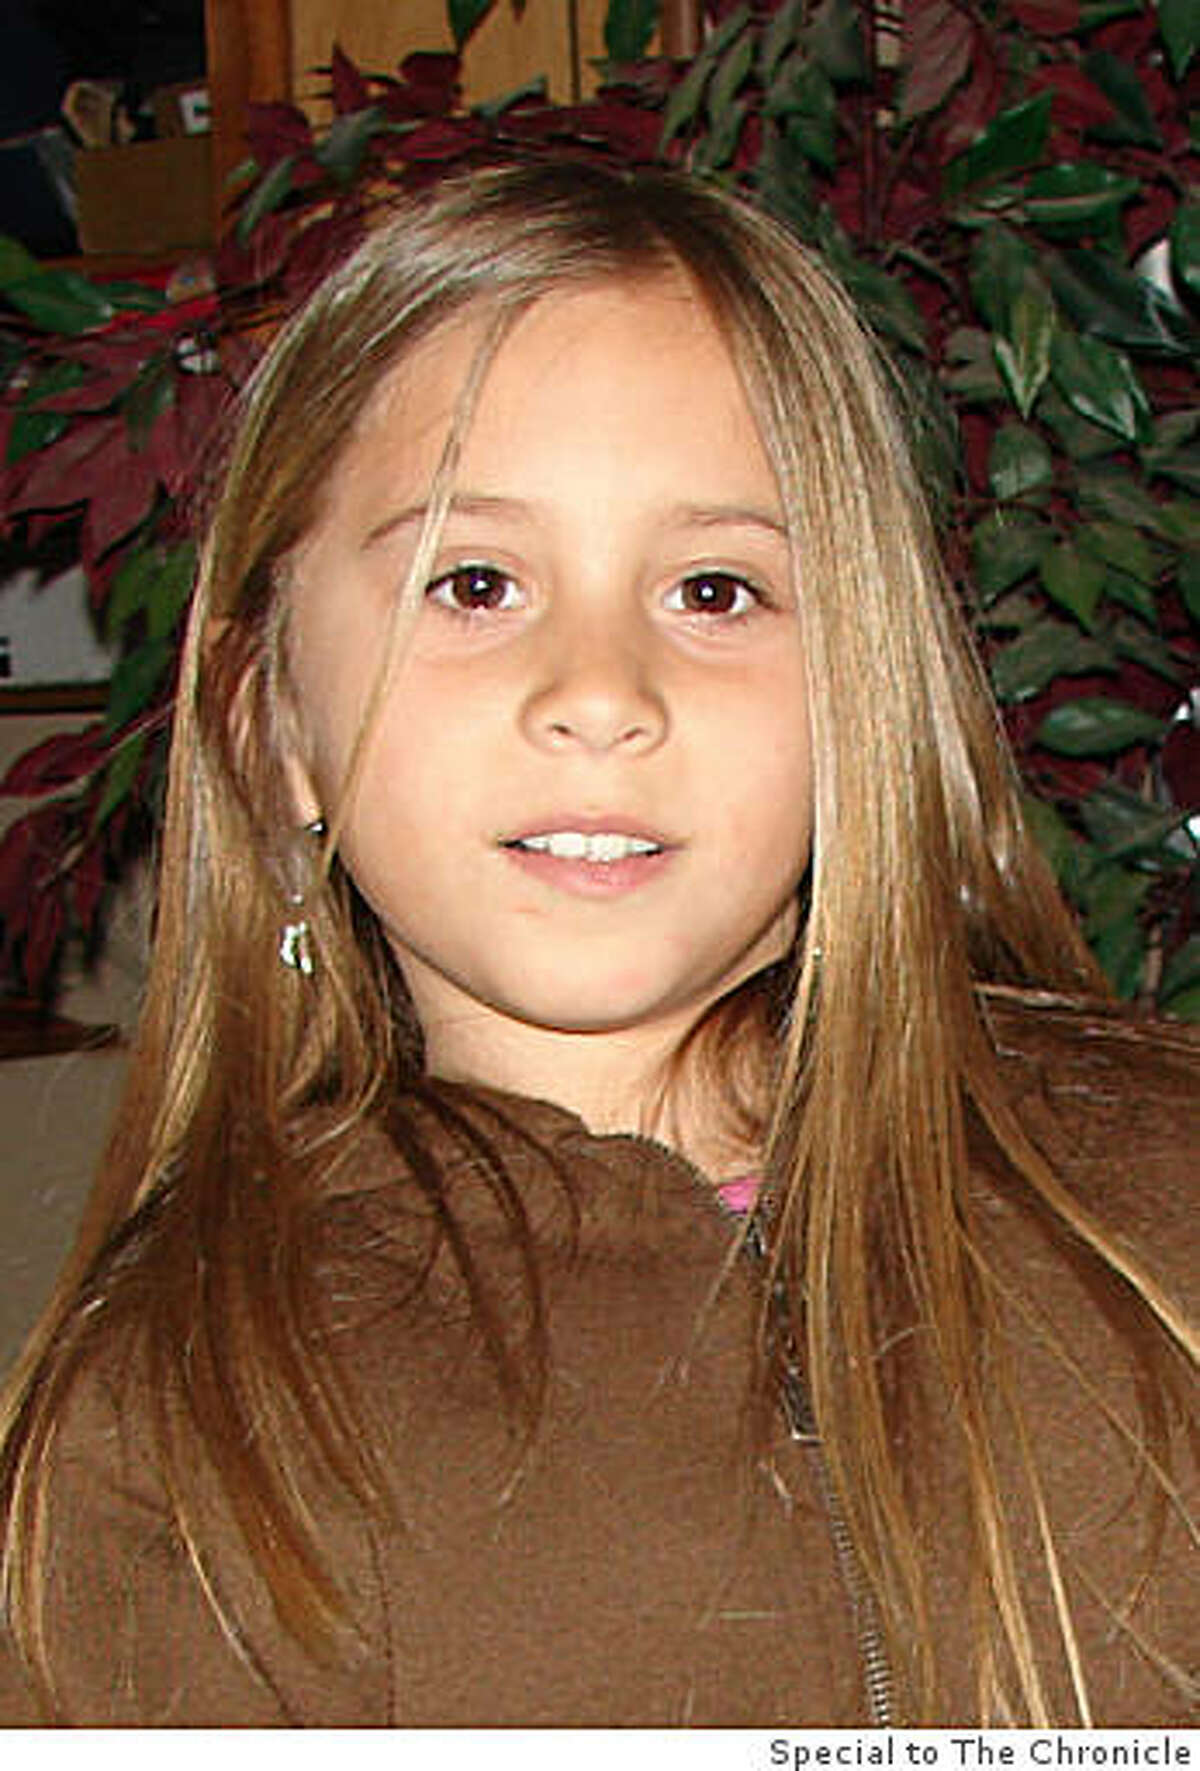 This hanout photo of 8 year old Sandra Cantu of Tracy, Califorina, was taken on March 8, 2009 on her 8th birthday. Cantu was reported last being seen on March 27 at Orchard Estates Mobile Home Park wearing a pink Hello Kitty shirt and a striped dress. She is hispanic, with brown hair, brown eyes, about 4 feet tall and weighs 45 pounds.